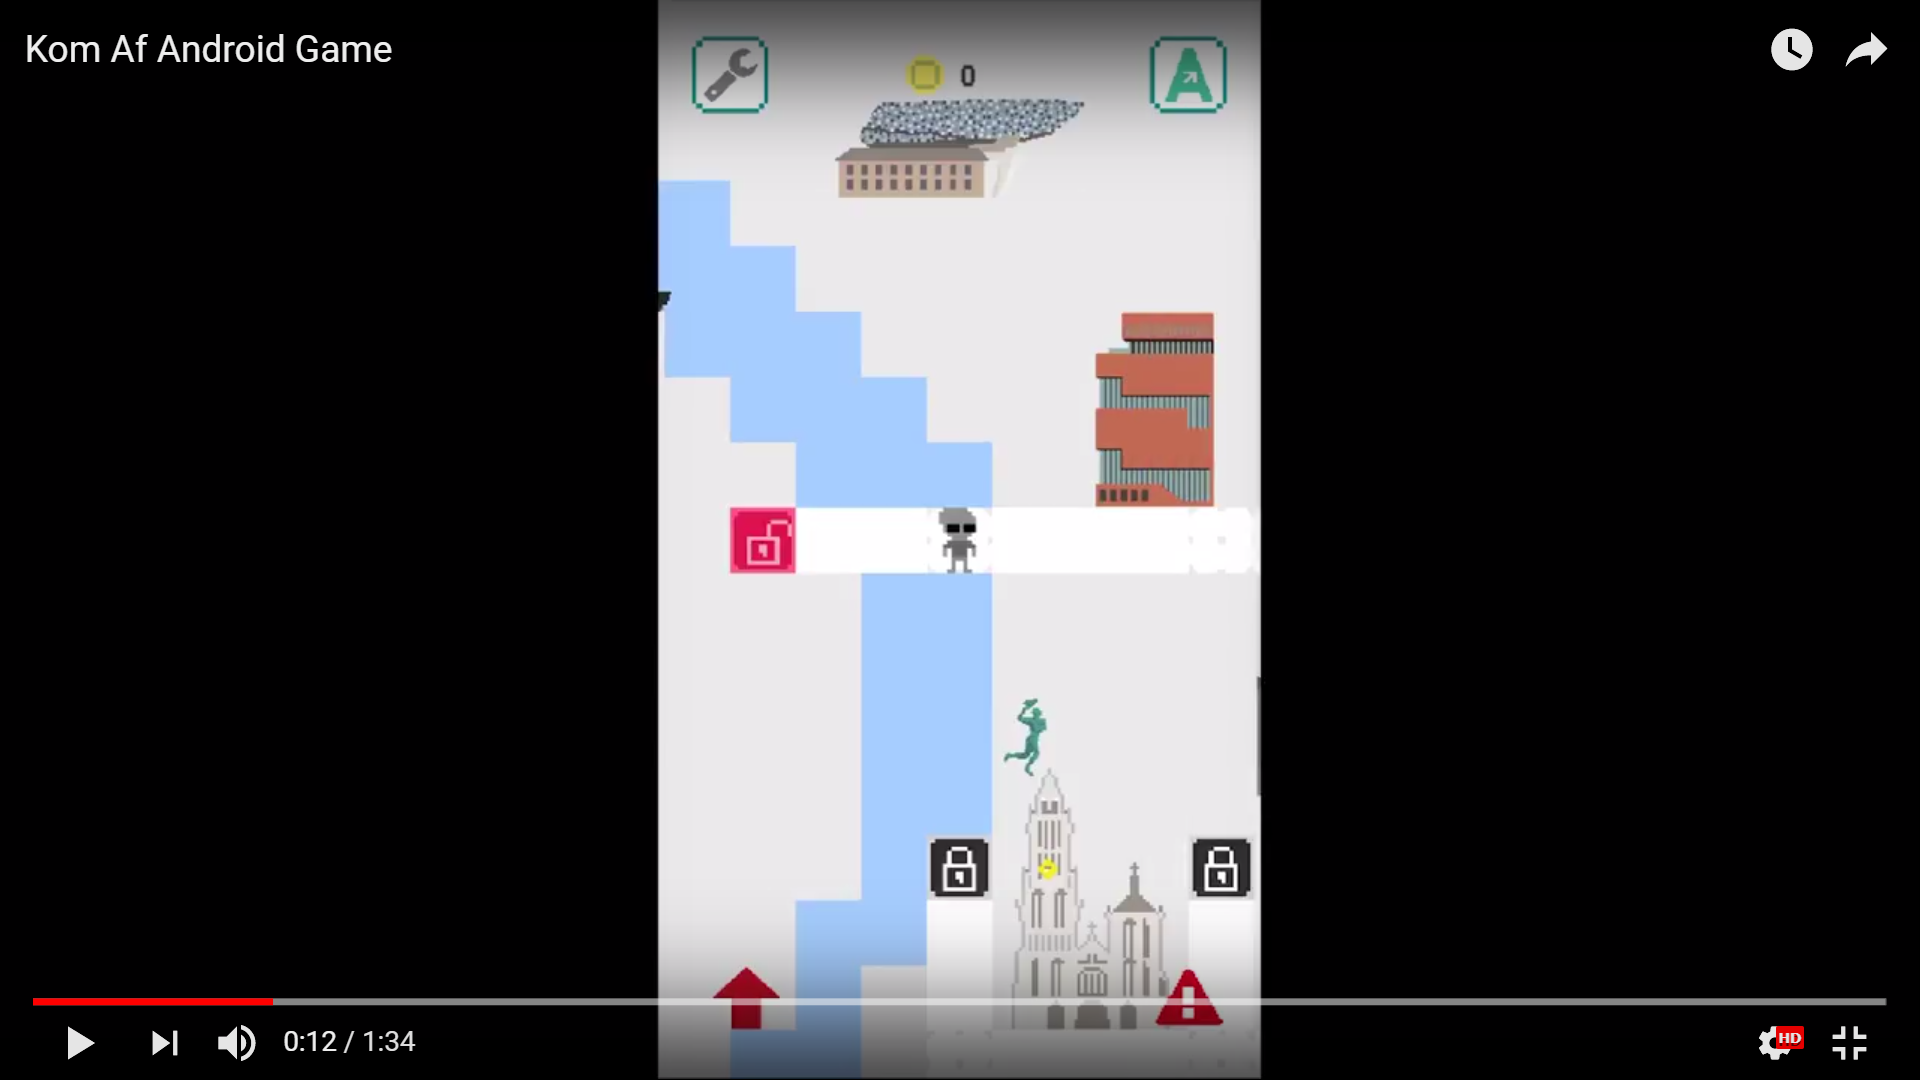 Screenshot from the gameplay video of KomAf